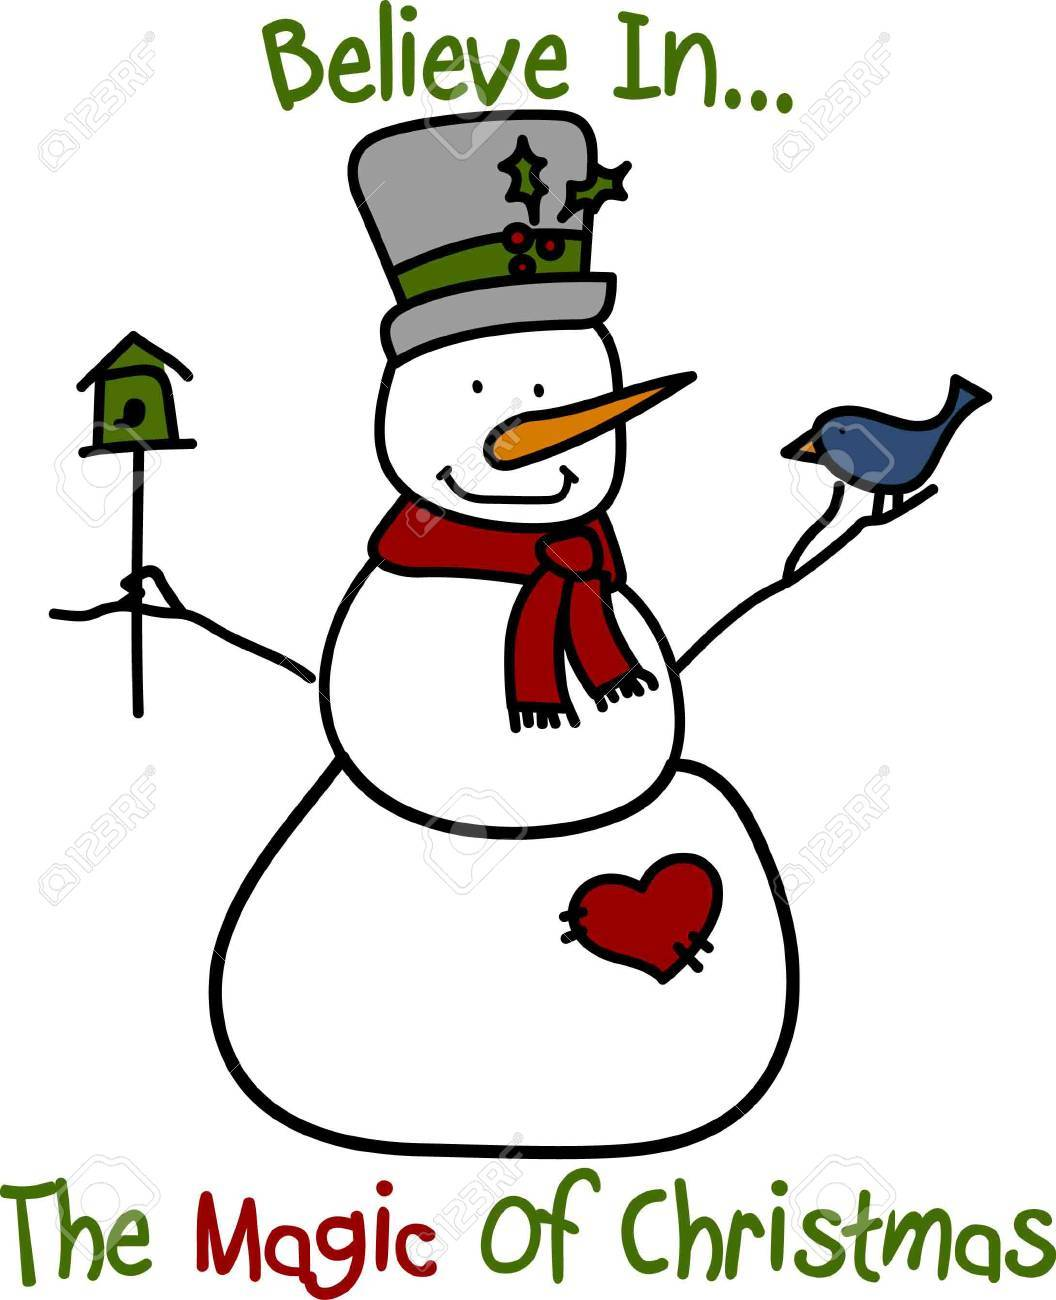 Even Our Snowman Is In The Christmas Spirit Of Giving With A ...